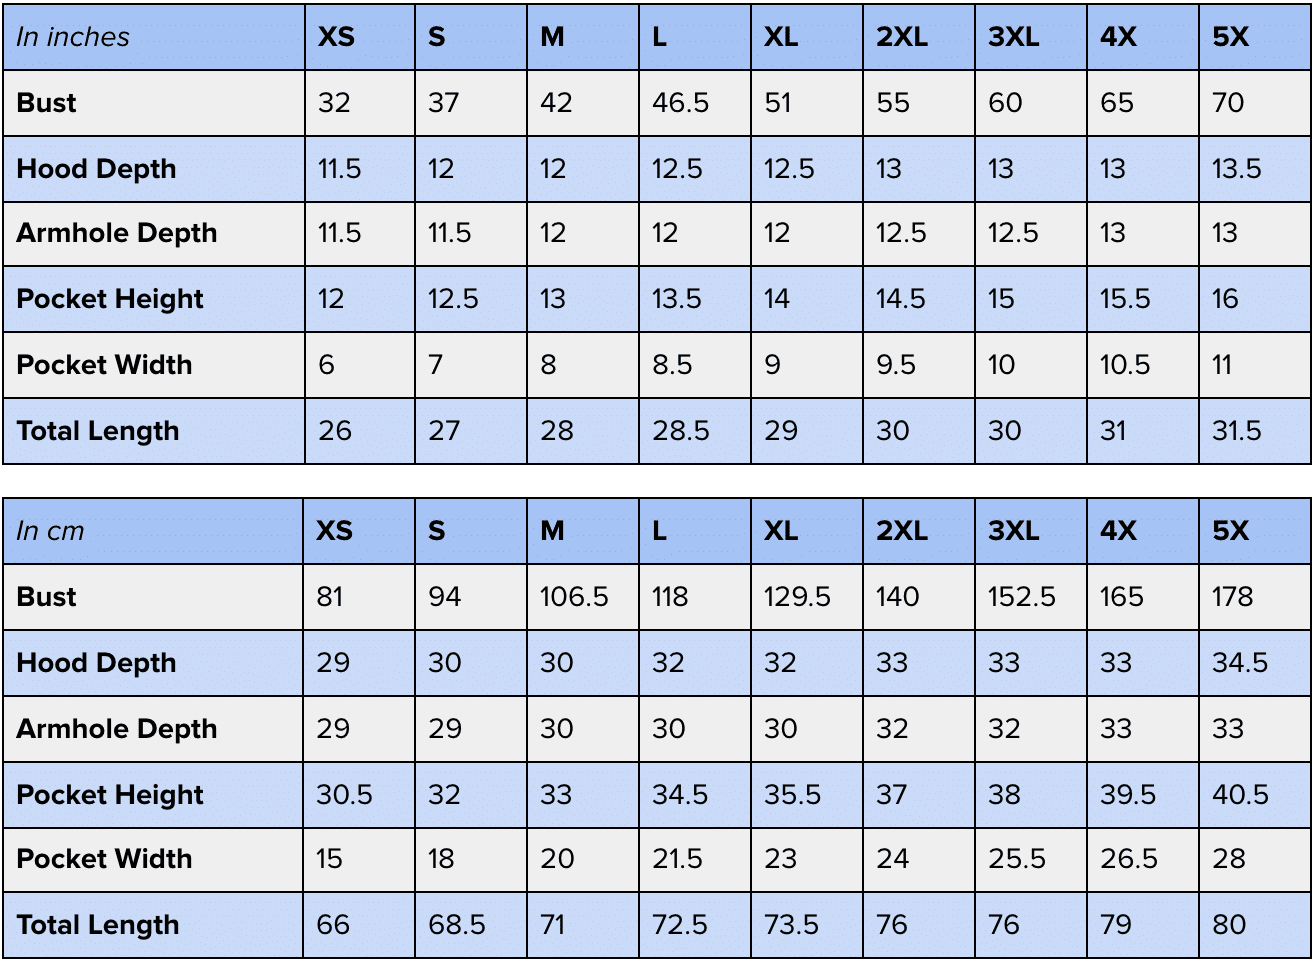 Lola Hooded Vest measurements in inches and cm